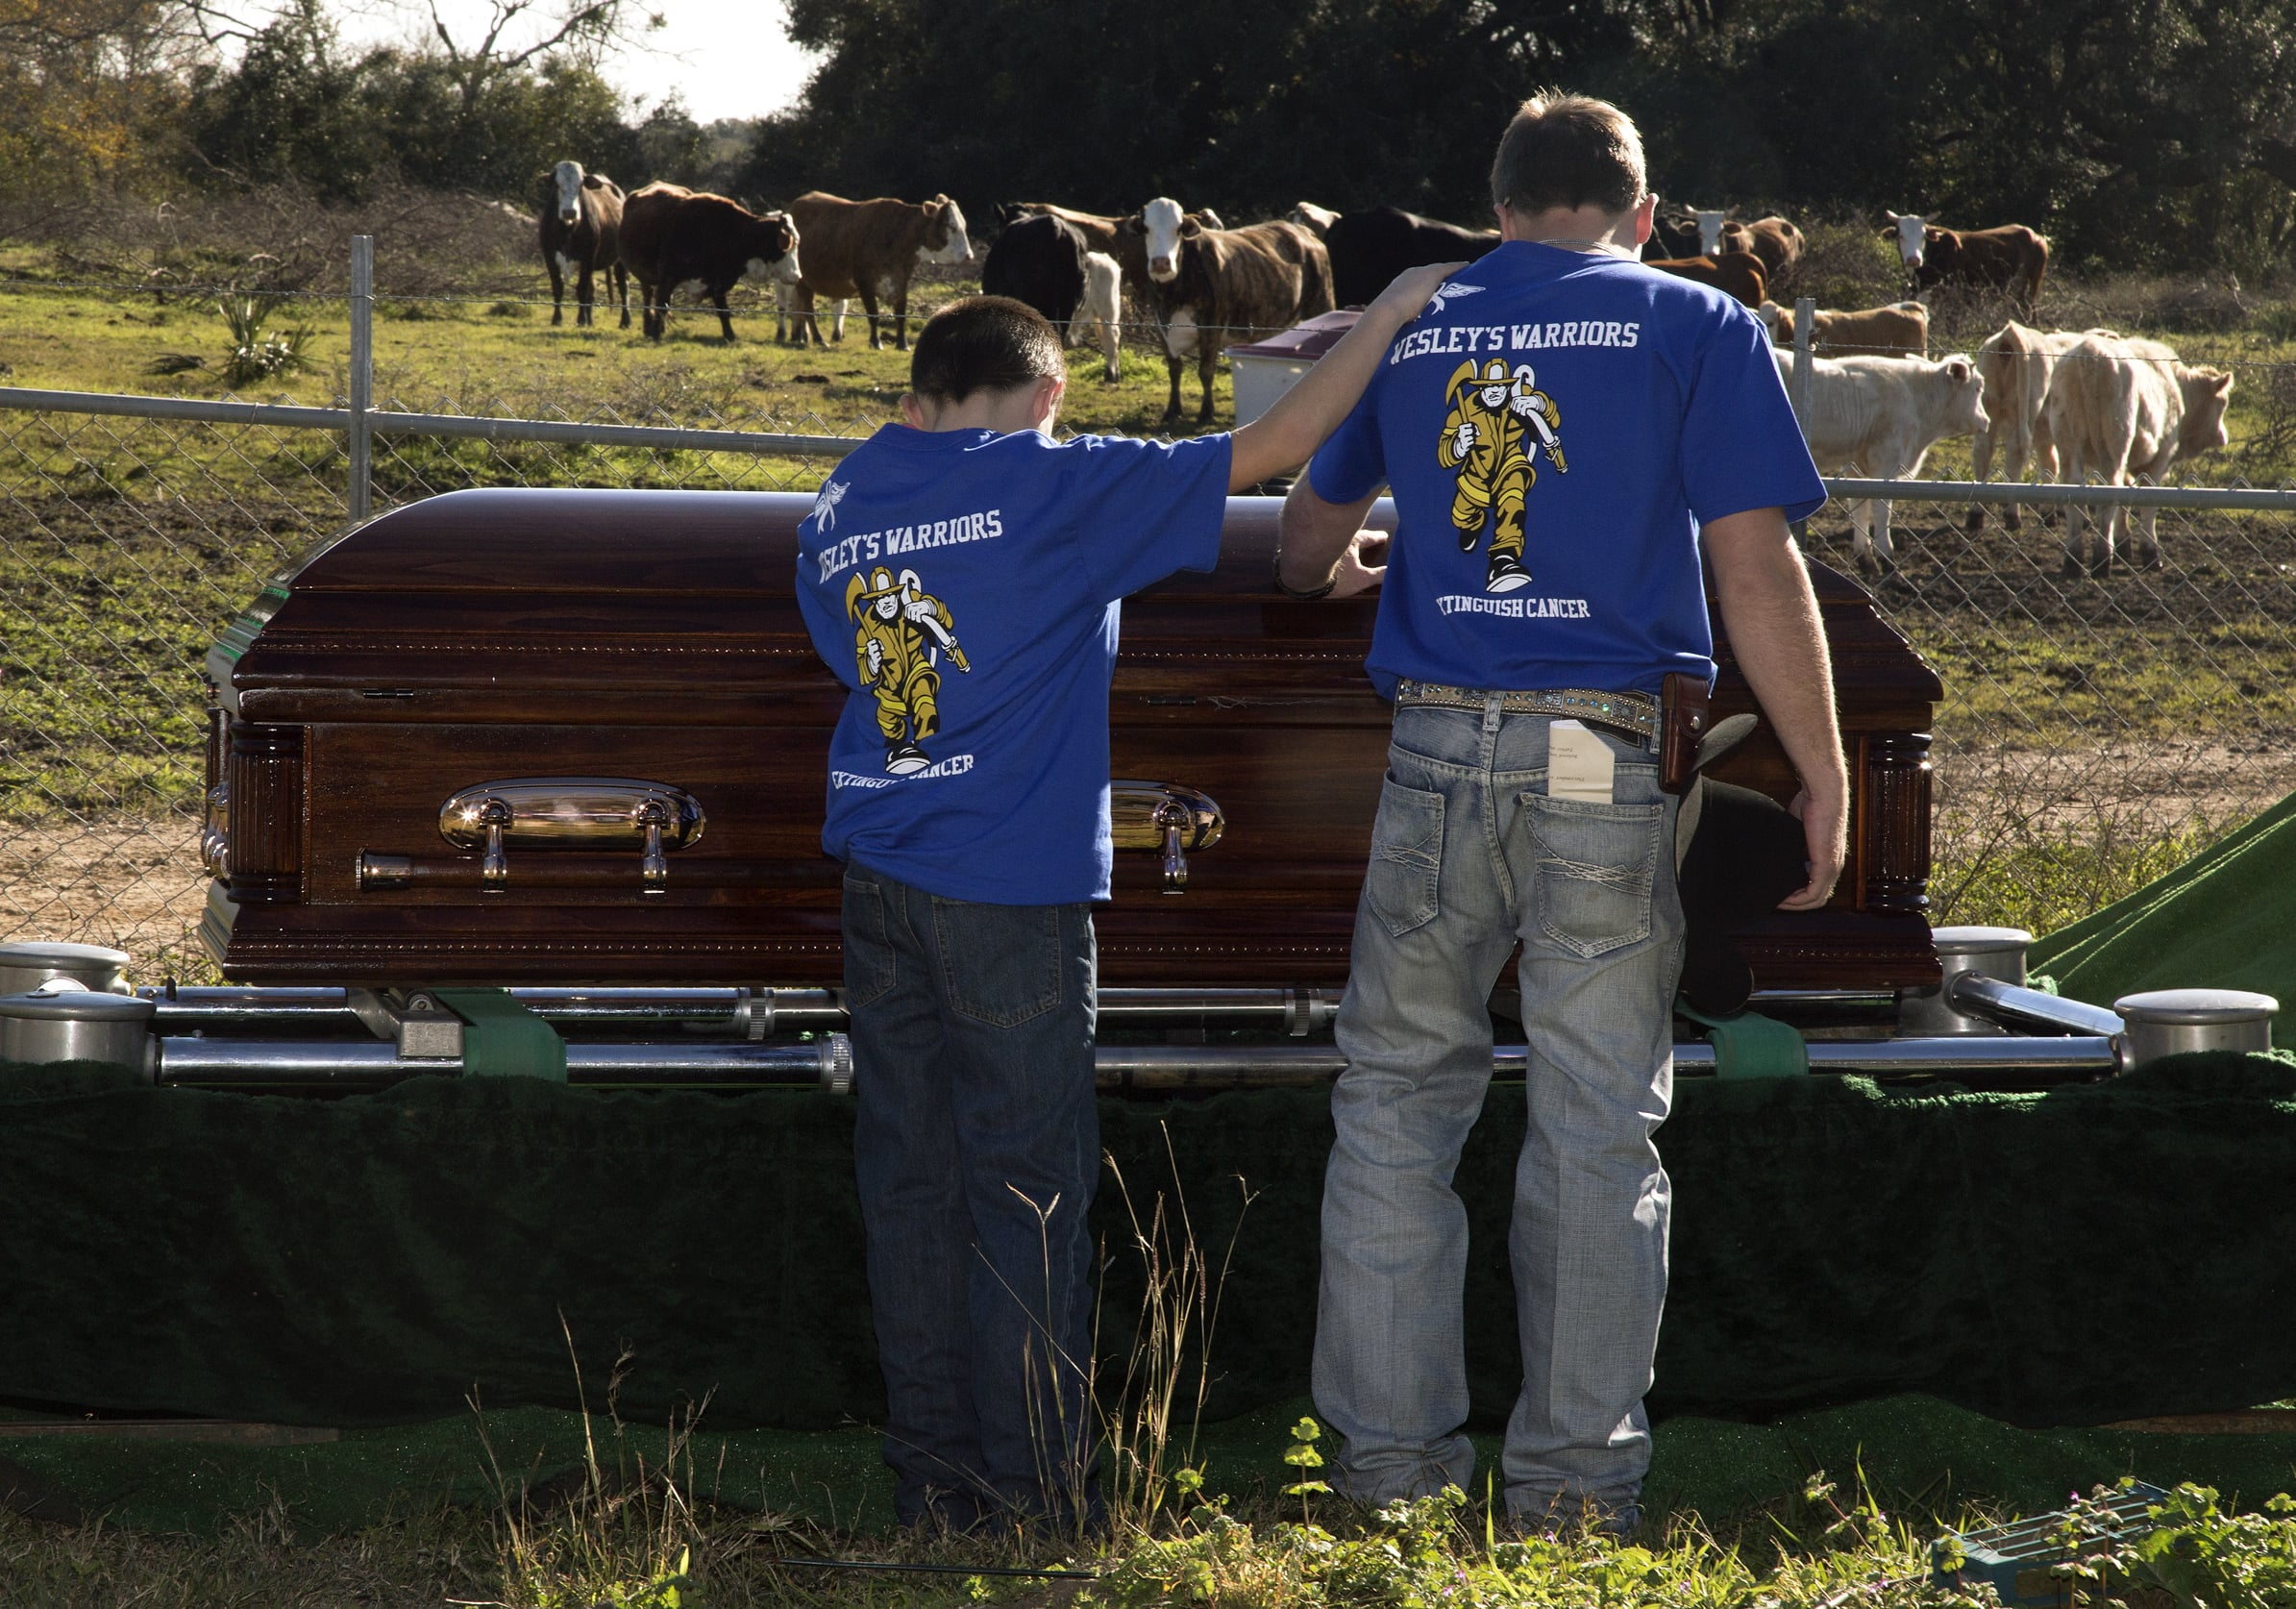 Mourners touch the casket of John Wesley Hendry on Tuesday, January 12, 2016, at Red Bluff Cemetery in Lolita, TX.